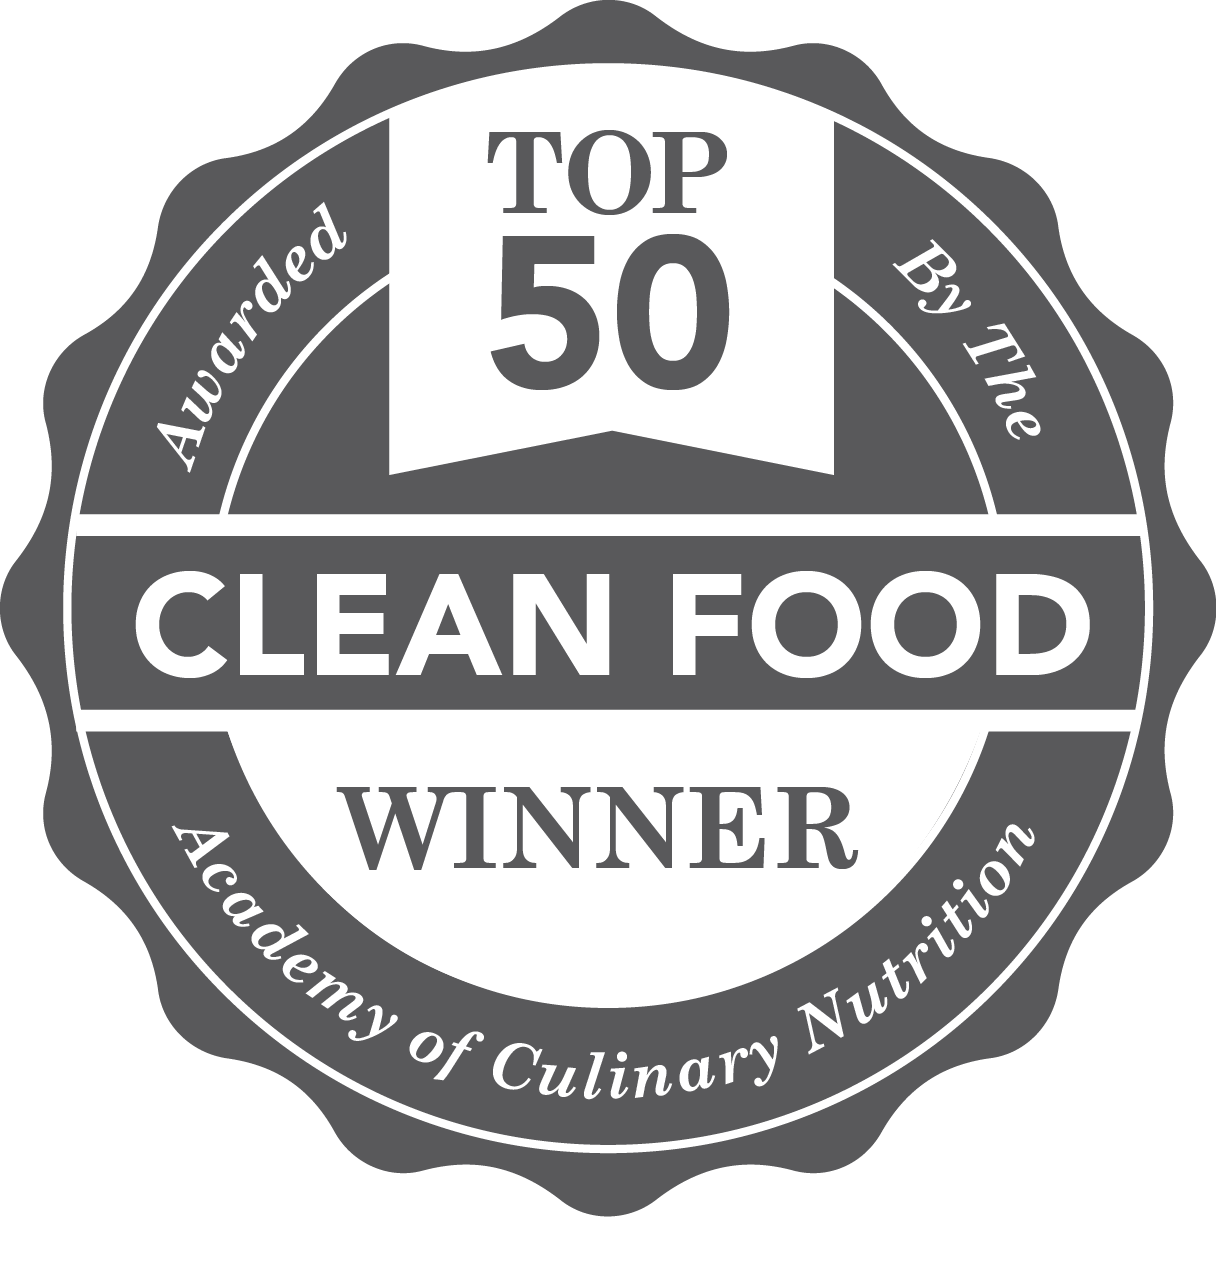 Fjortendeplass på Academy of Culinary Nutritions Top 50 Clean Food Blogs i 2015